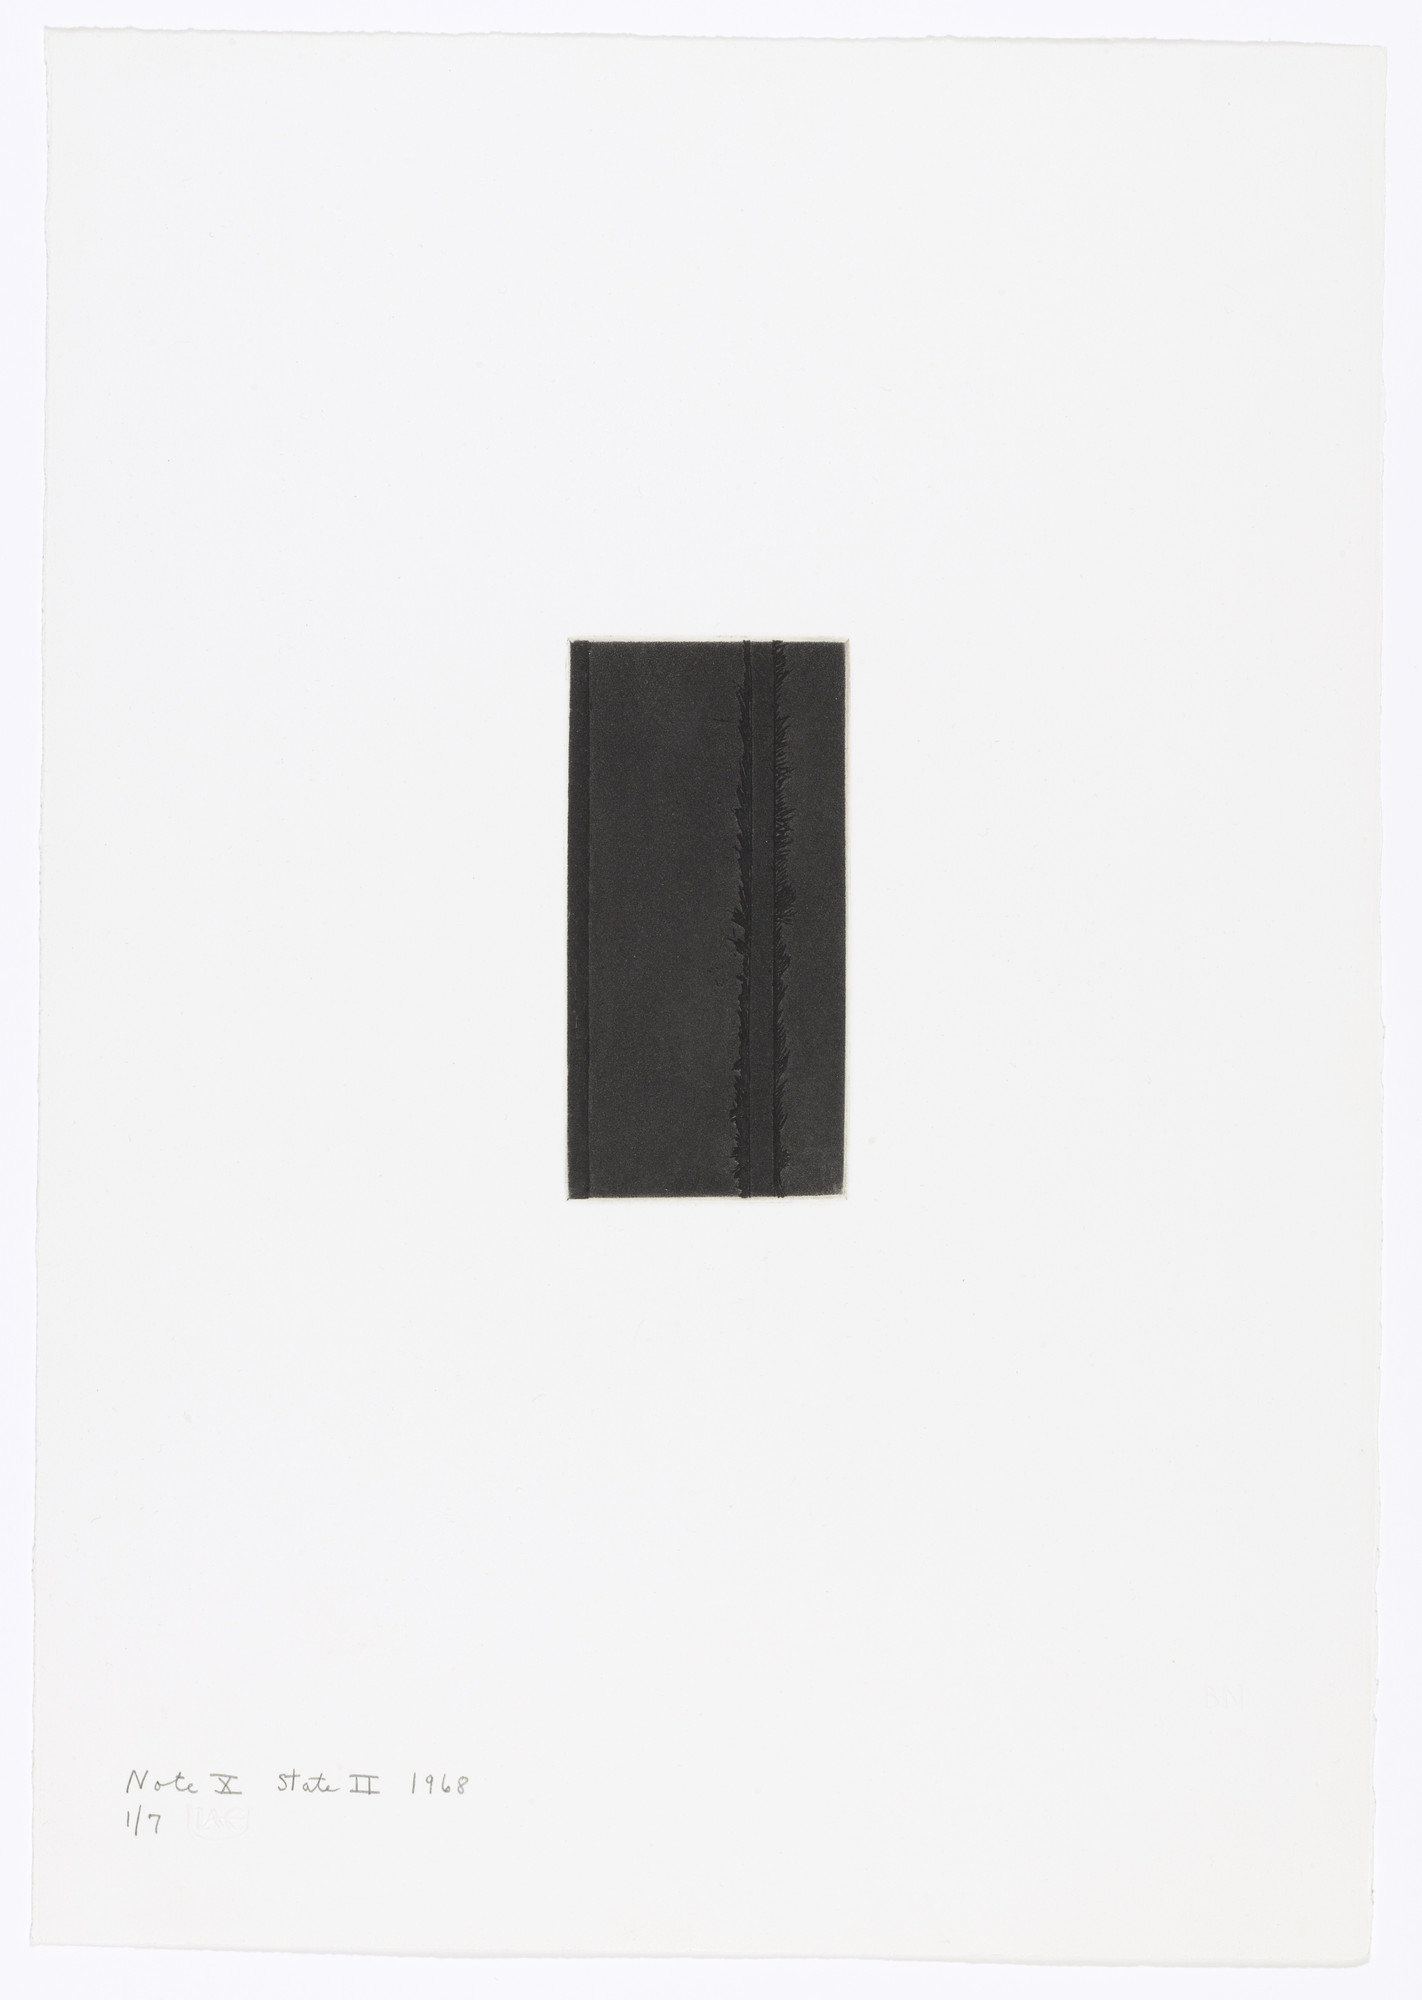 Barnett Newman. Note X (State II) from Notes. 1968